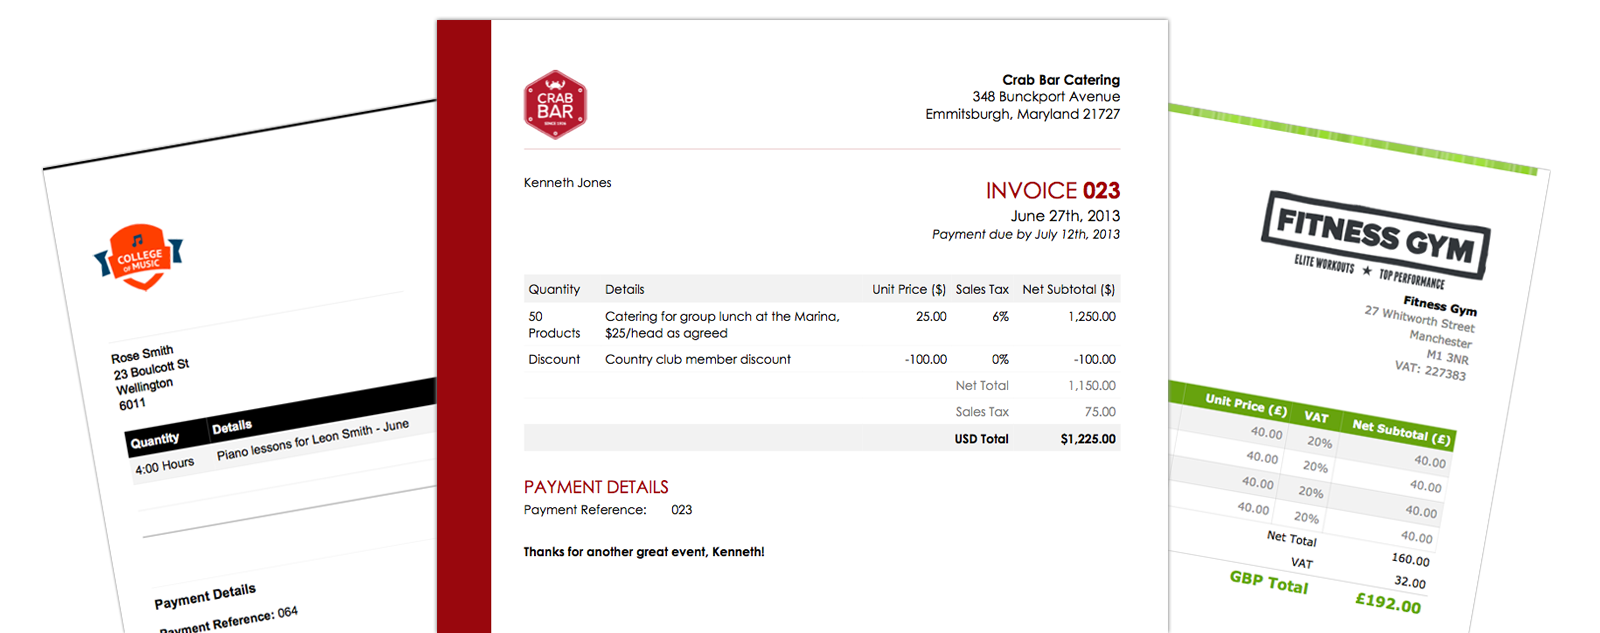 Online invoice templates - gallery view